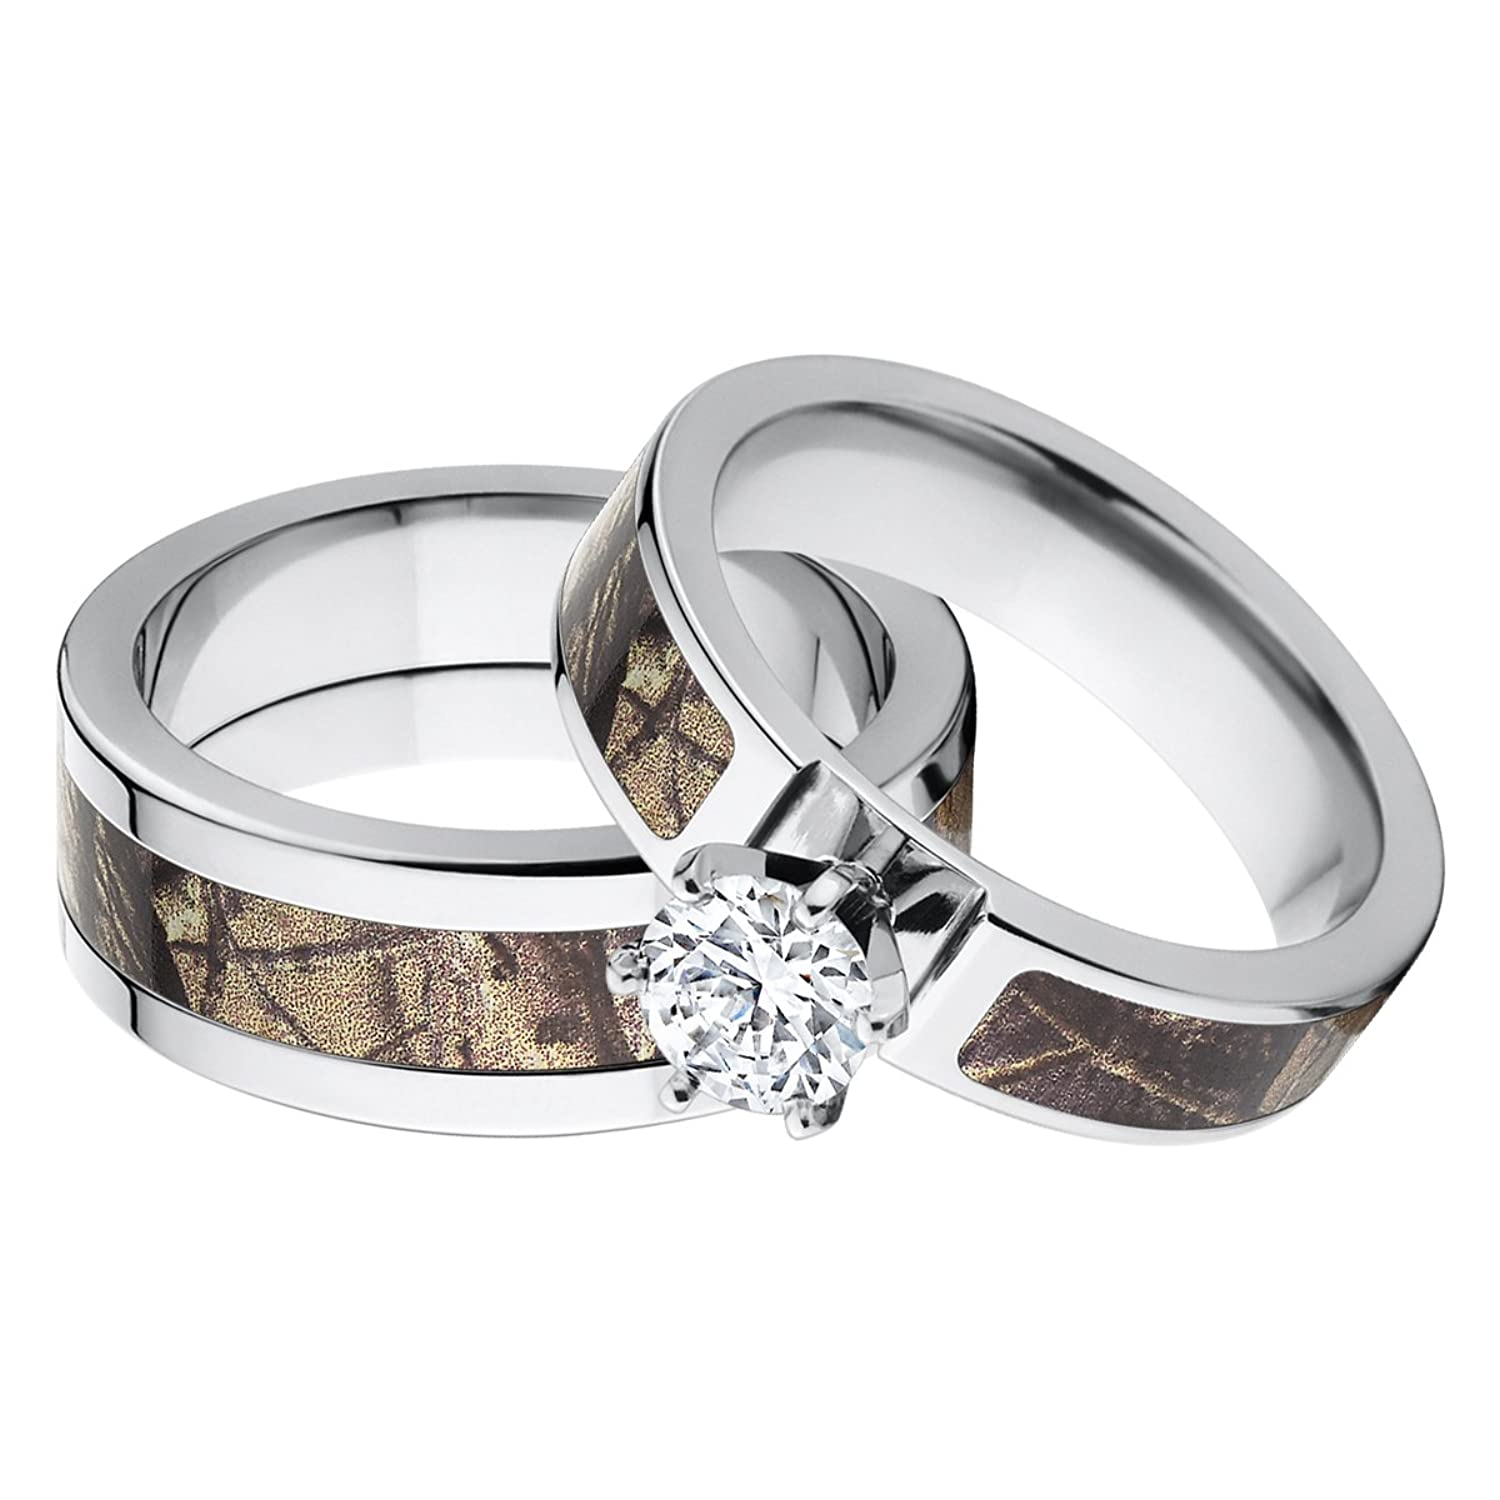 amazoncom his and hers matching realtree ap camouflage wedding ring set jewelry - Camo Wedding Ring Sets For Him And Her